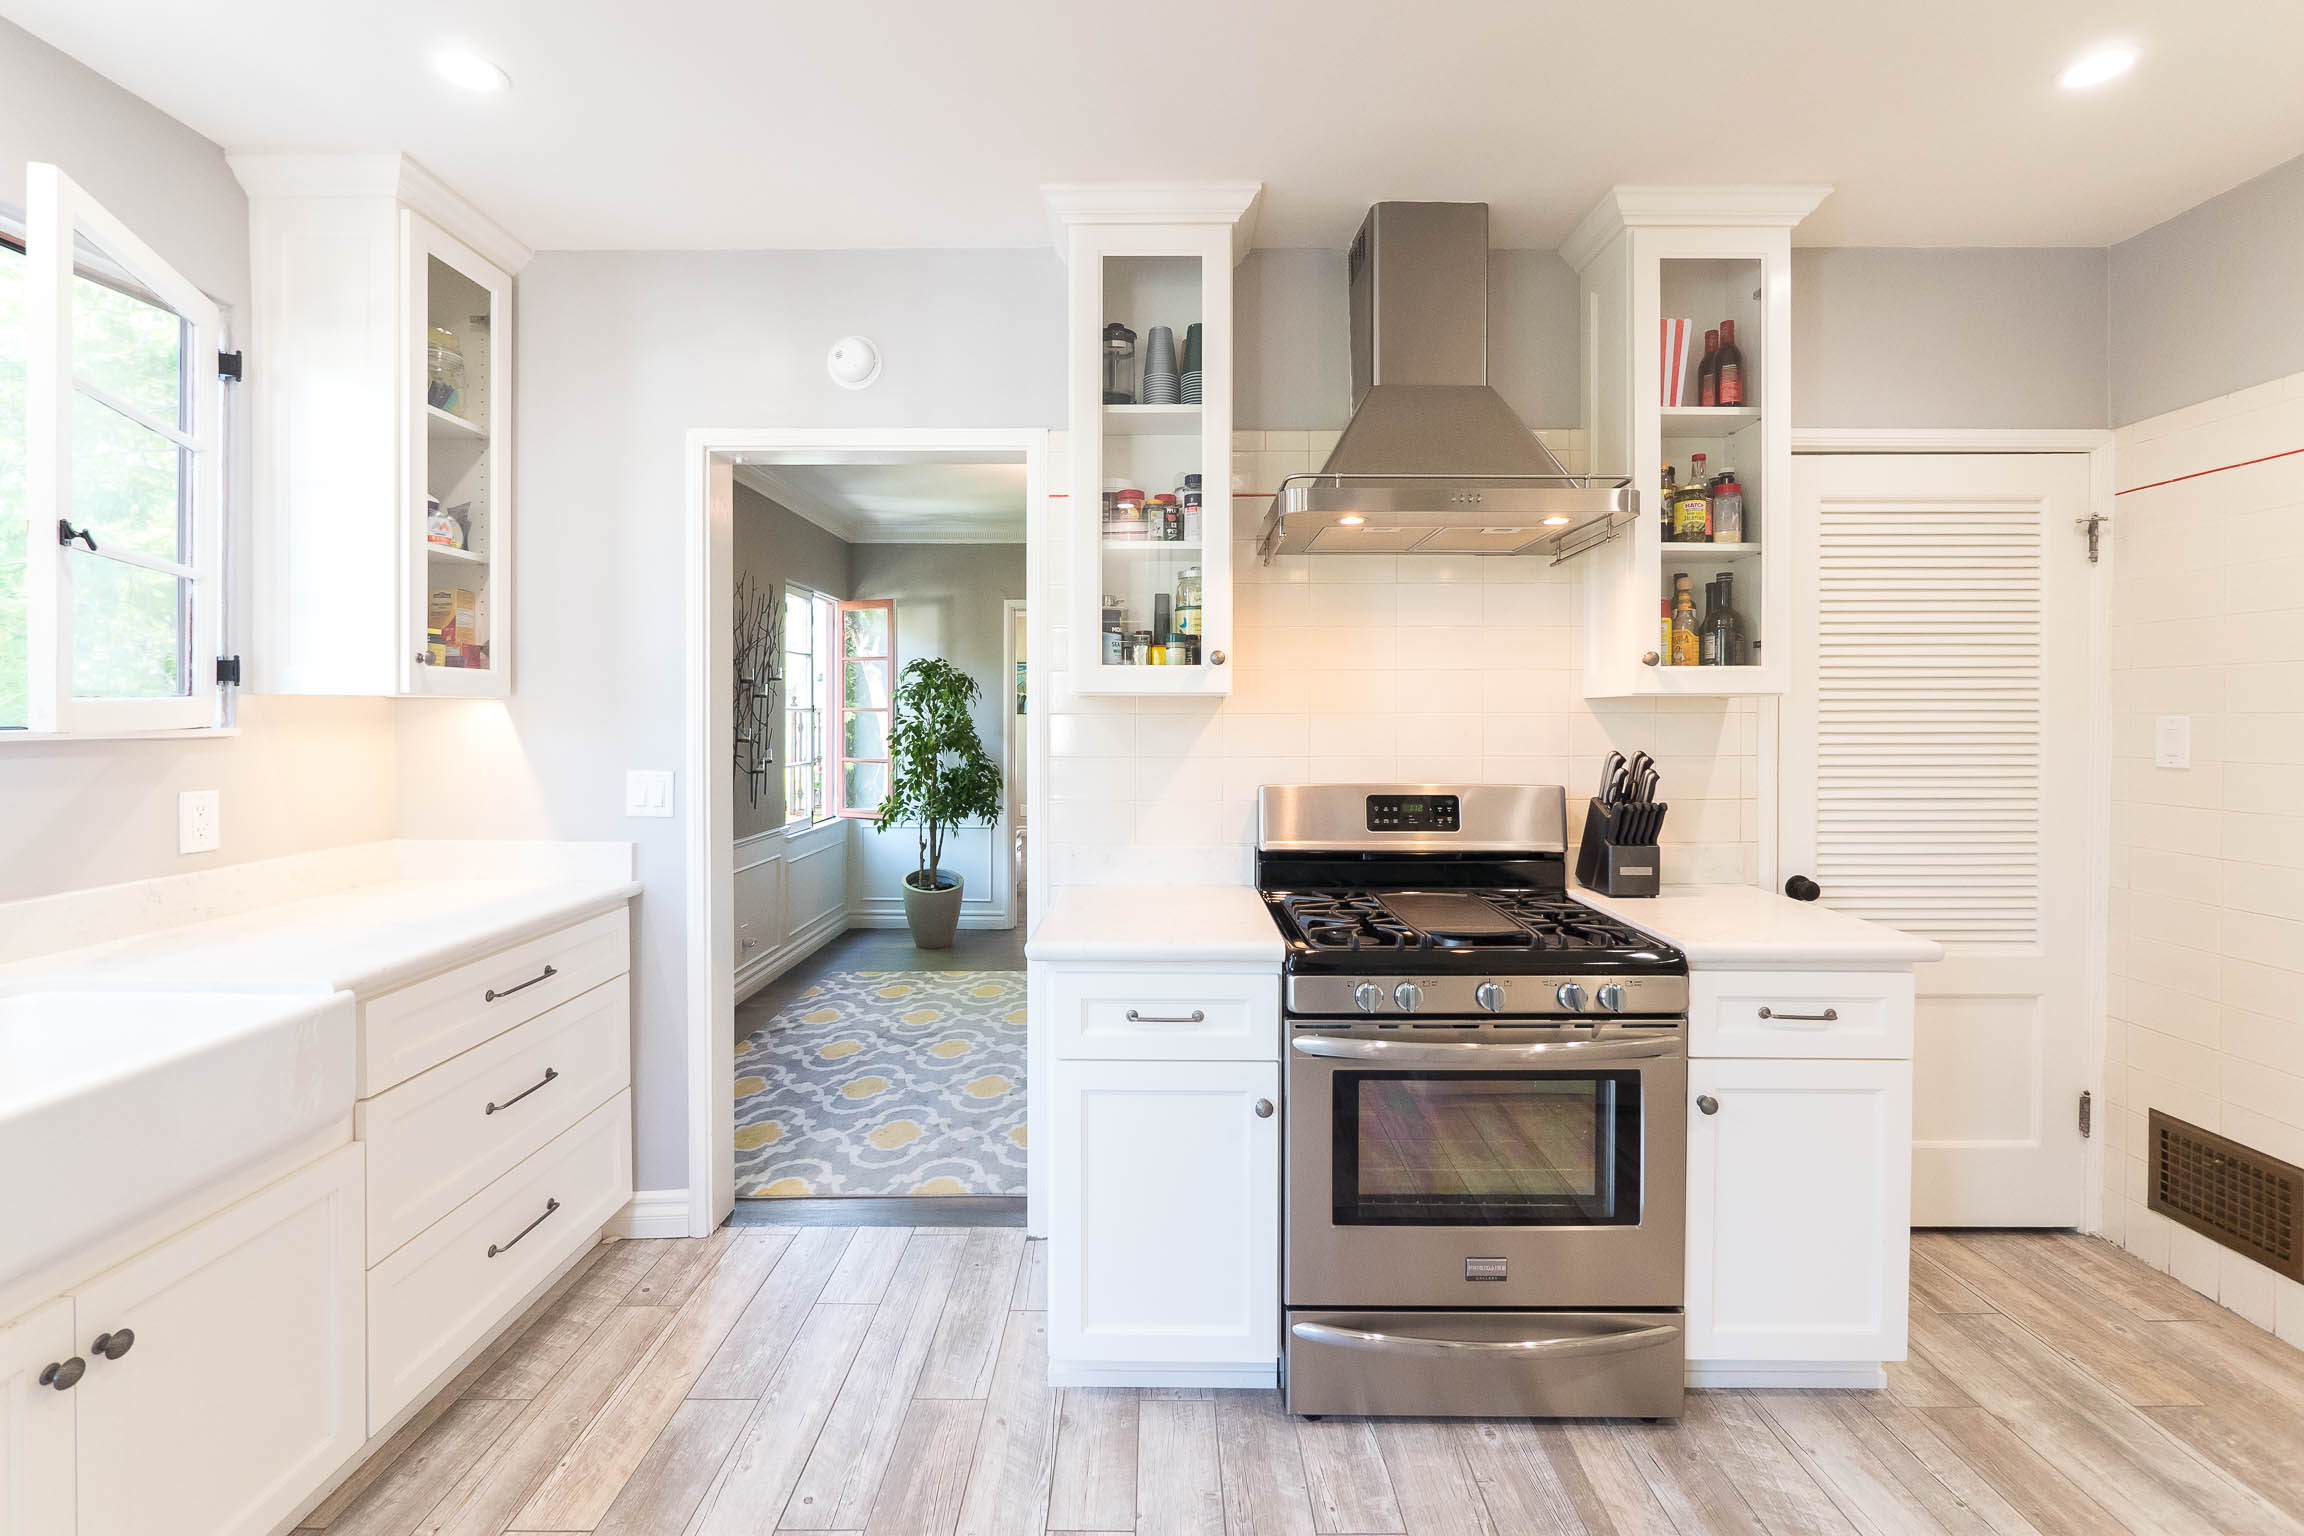 Luxurious and Renovated Spanish Duplex | Upper Unit | 2600 sq ft | Private Patio | 1 Car Garage